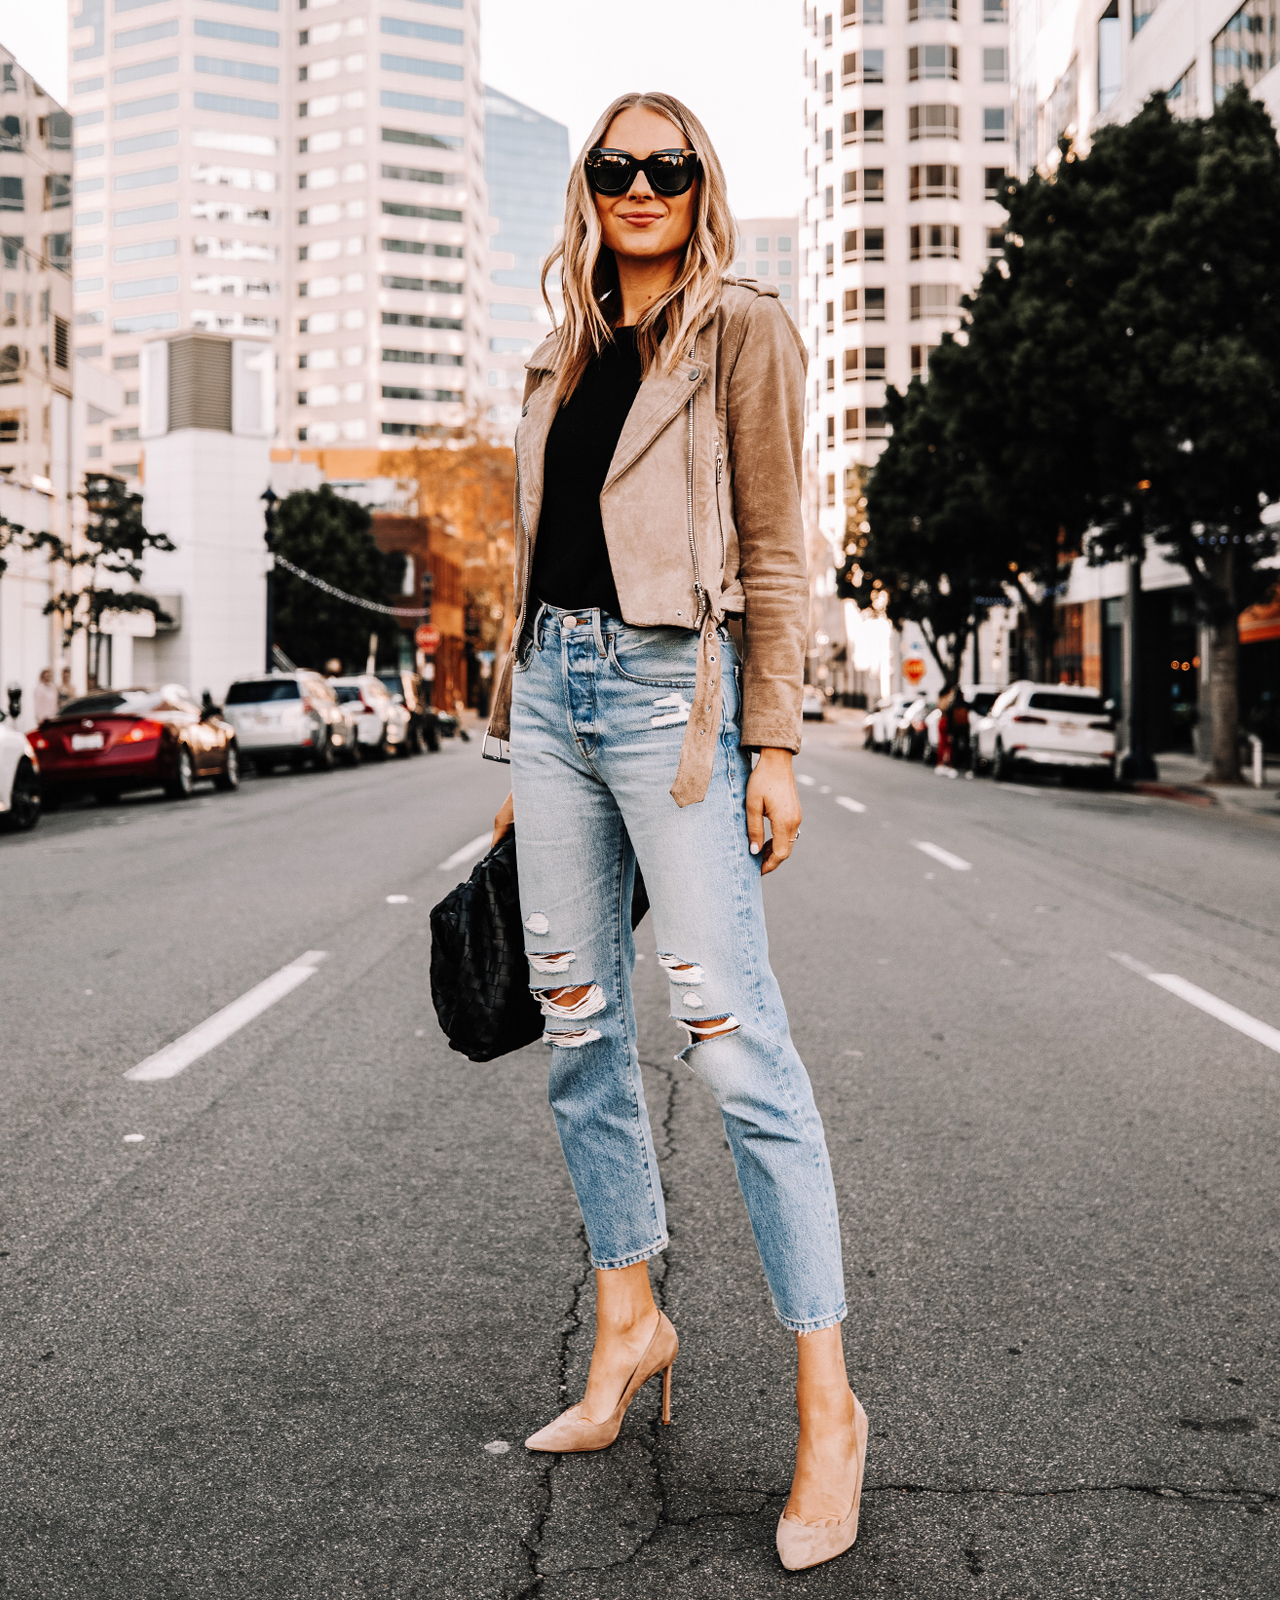 Fashion Jackson Wearing Blanknyc Suede Moto Jacket Frame Ripped Jeans Nude Pumps Fall Outfit Street Style